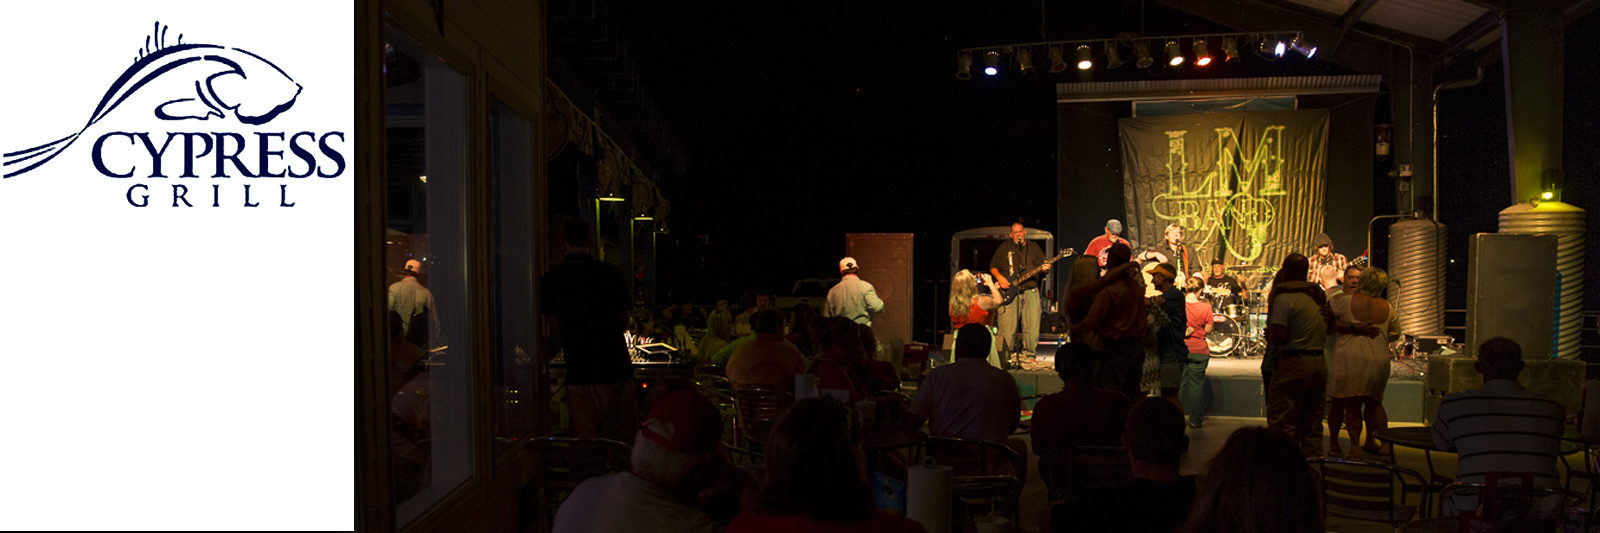 Lake Blackshear Header Concert at Cypress Bar and Grill